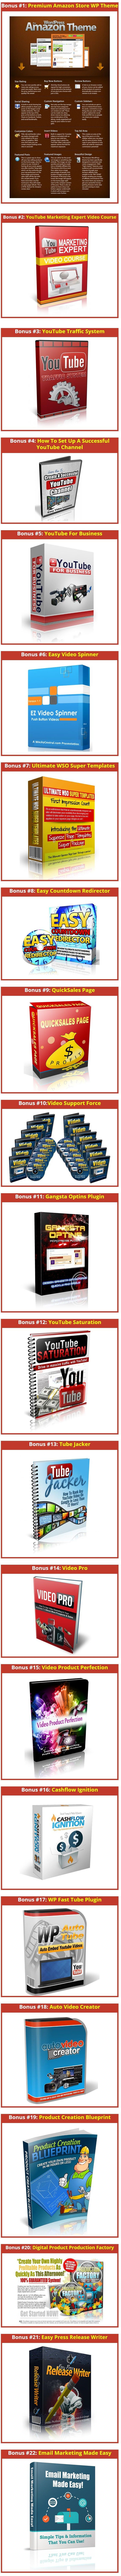 Video Strike Review+BEST BONUS+Discount& Design Eye-Popping Videos With A Couple Cicks Warrior Forum Classified Ads